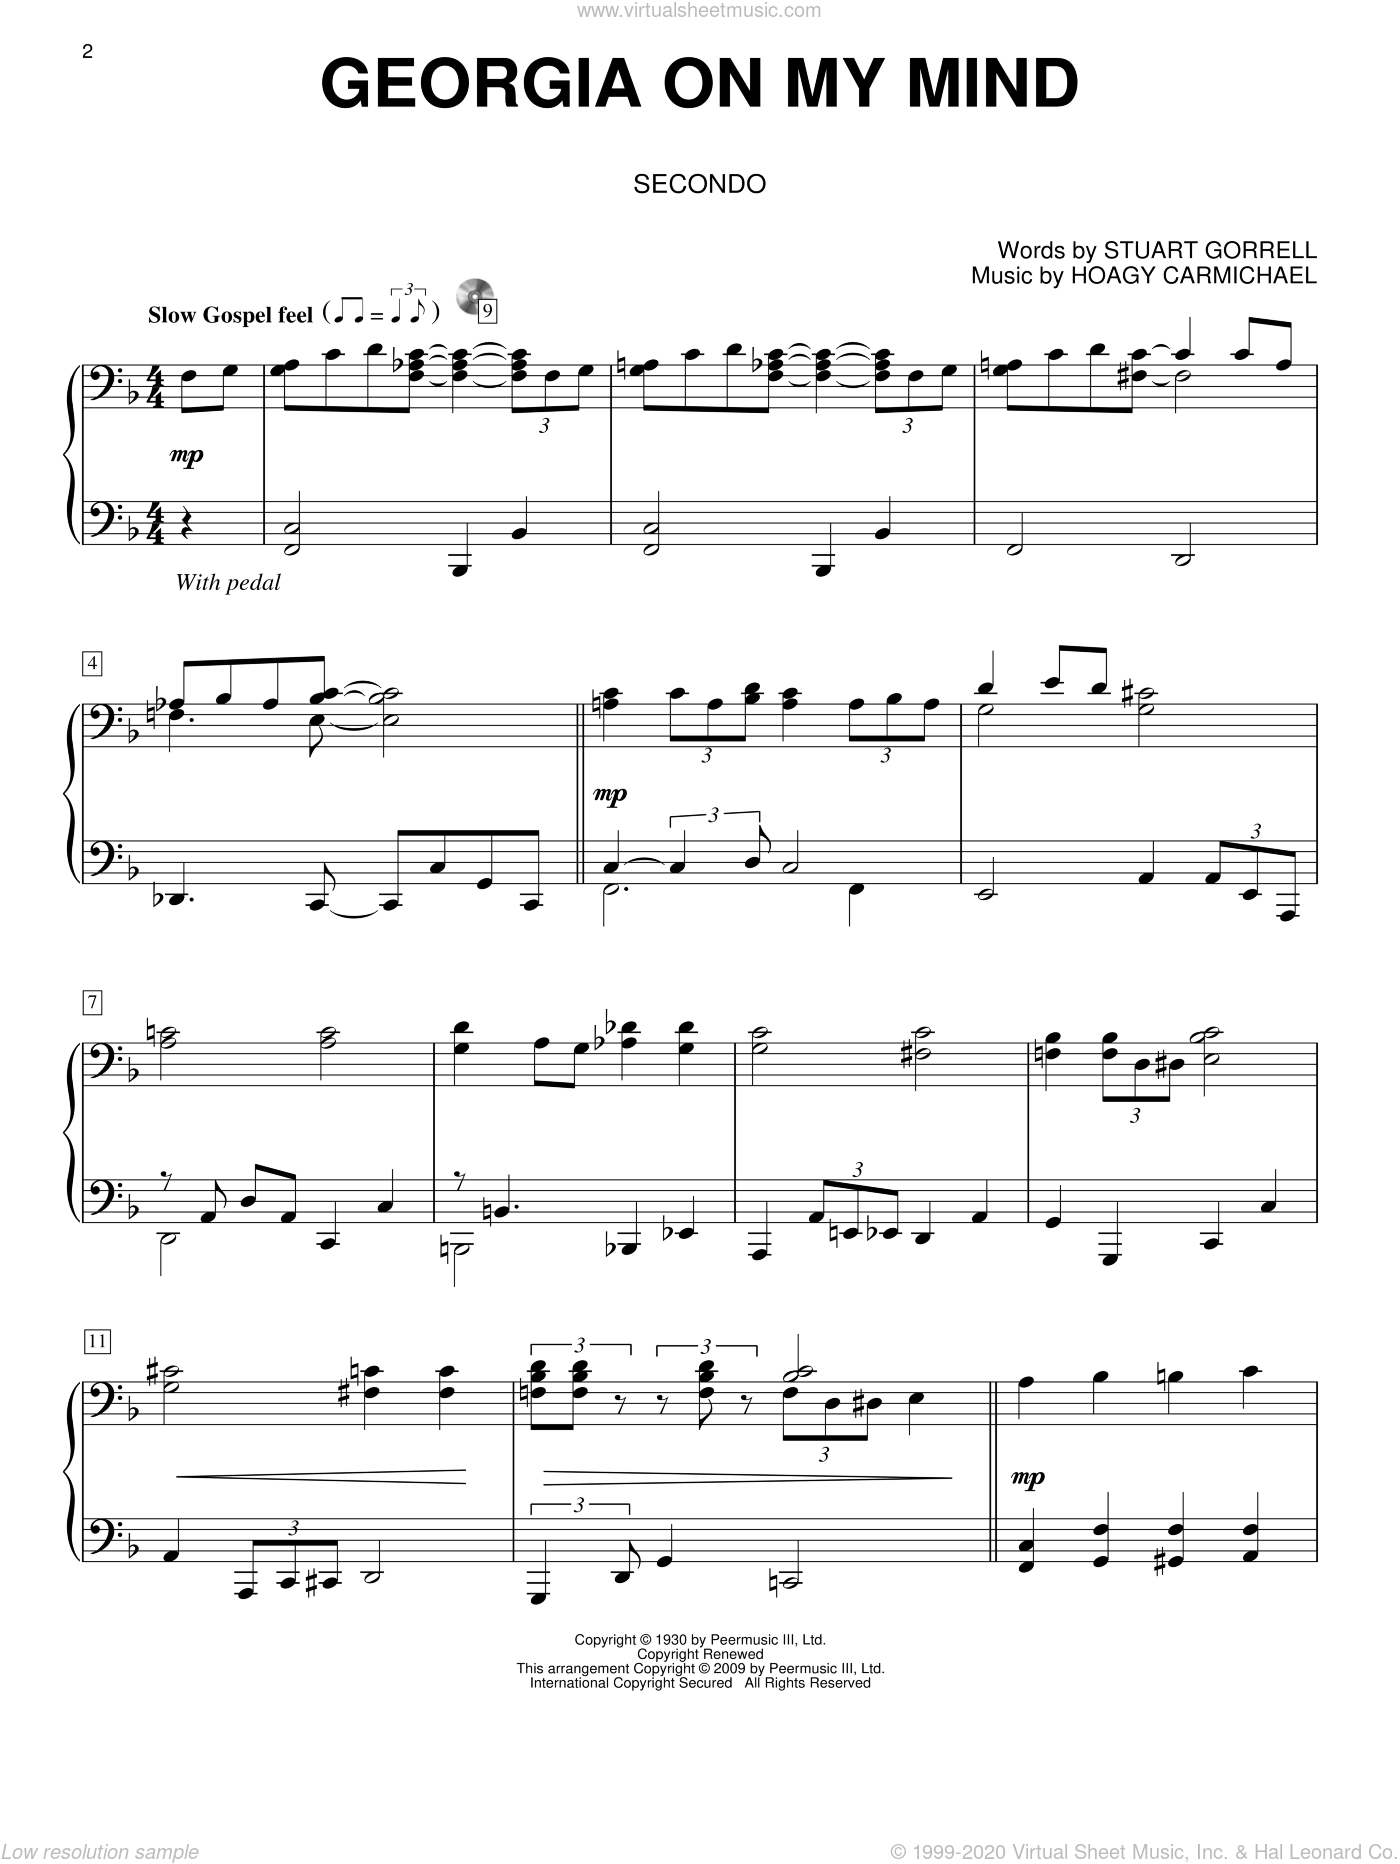 Georgia On My Mind sheet music for piano four hands (duets) by Stuart Gorrell, Ray Charles, Willie Nelson and Hoagy Carmichael. Score Image Preview.